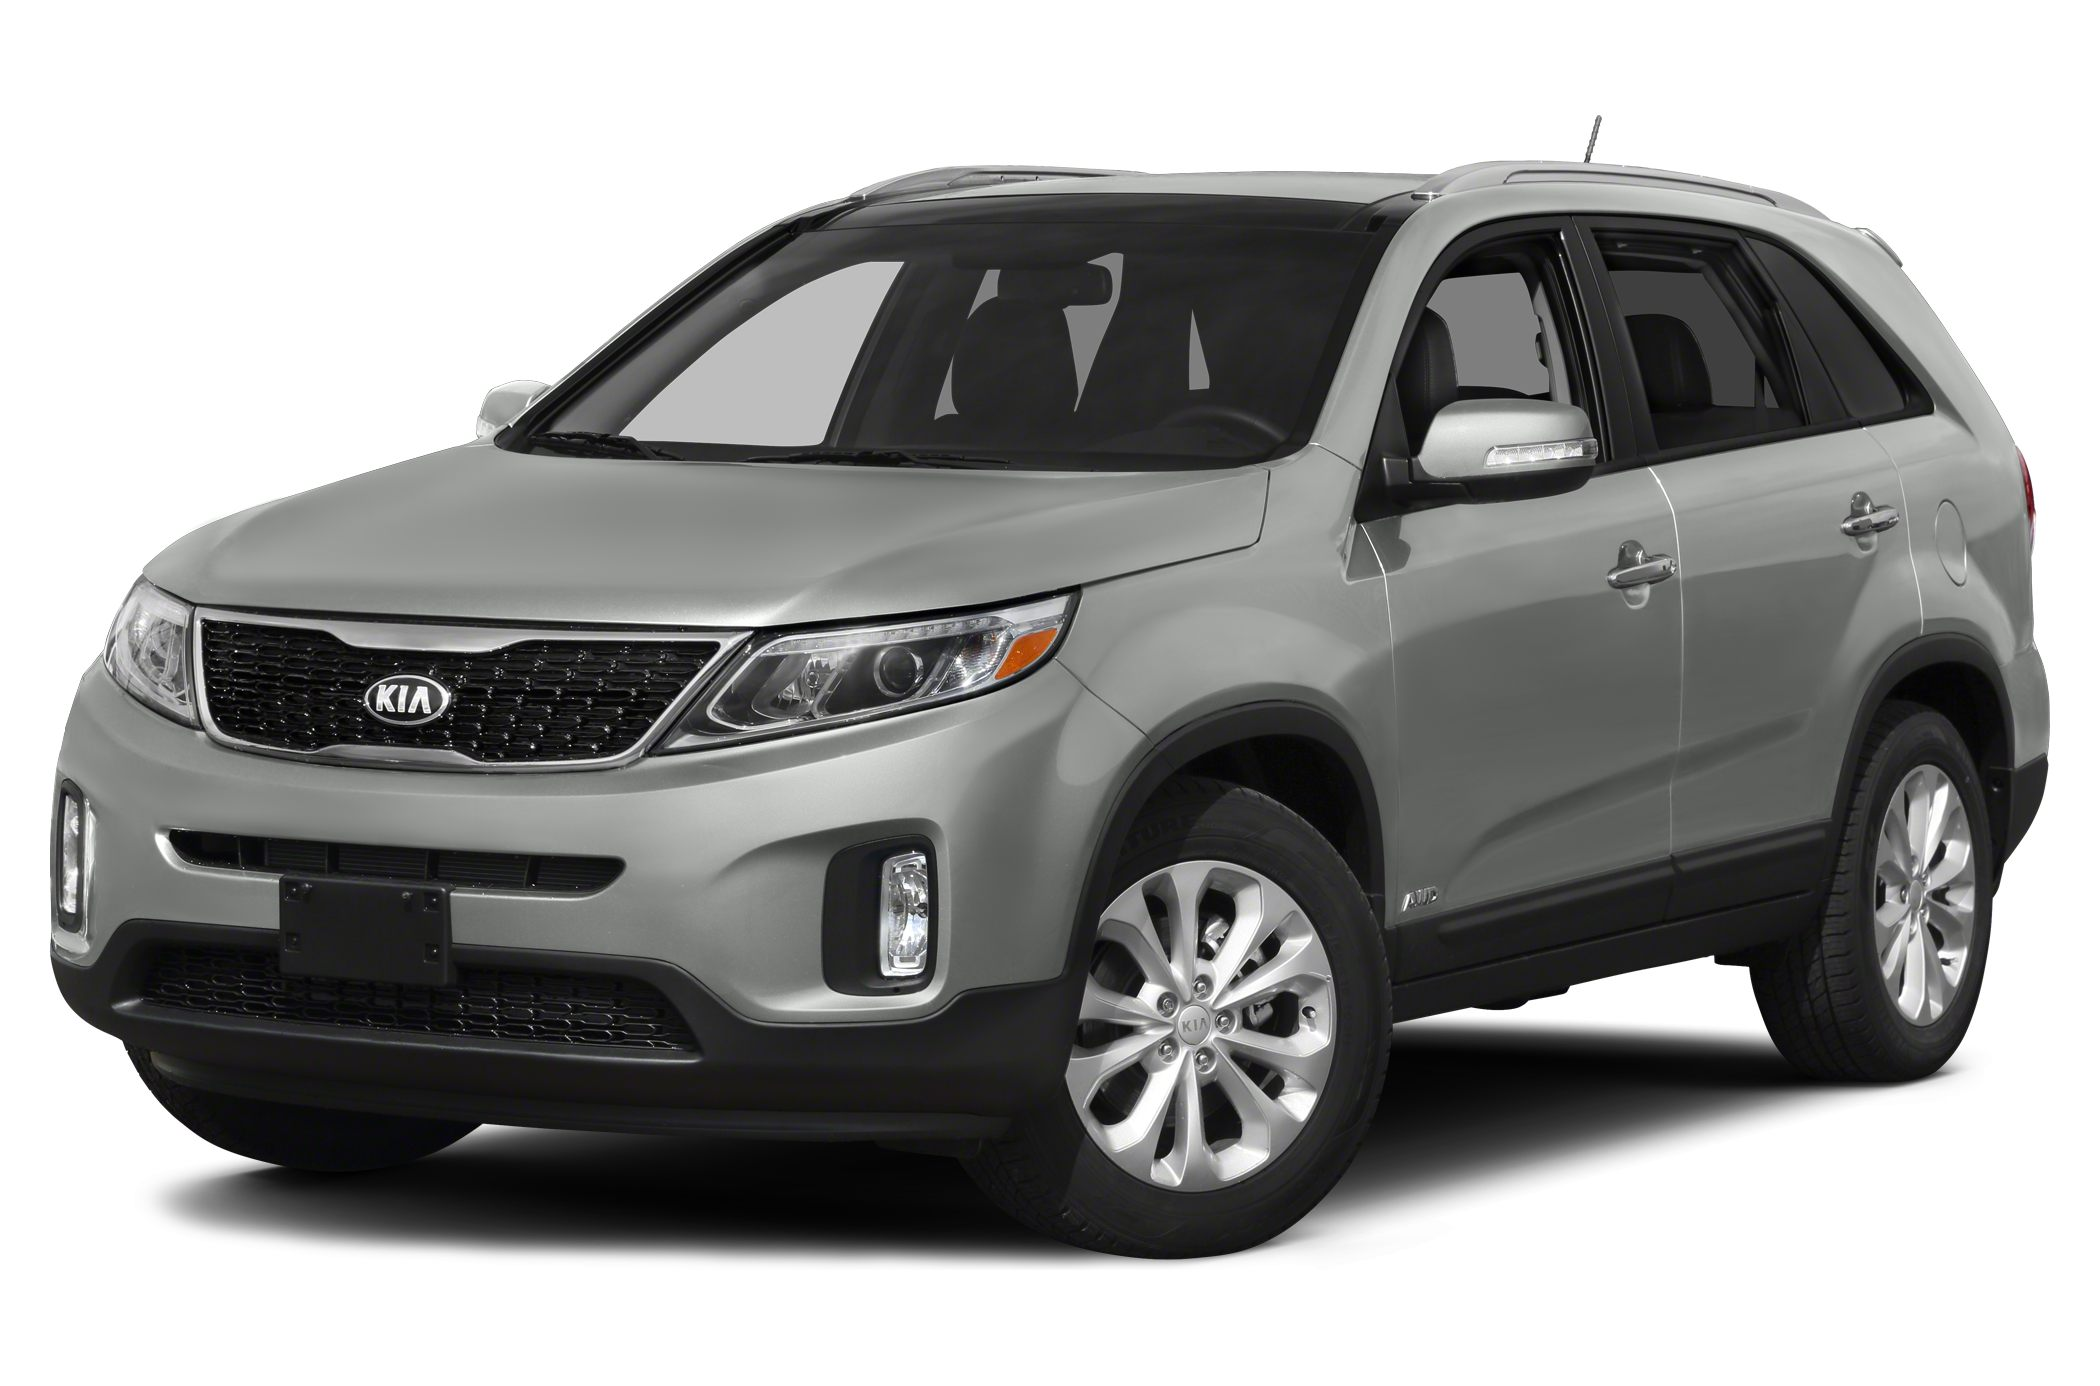 2015 Kia Sorento LX SUV for sale in Falls Church for $27,169 with 0 miles.